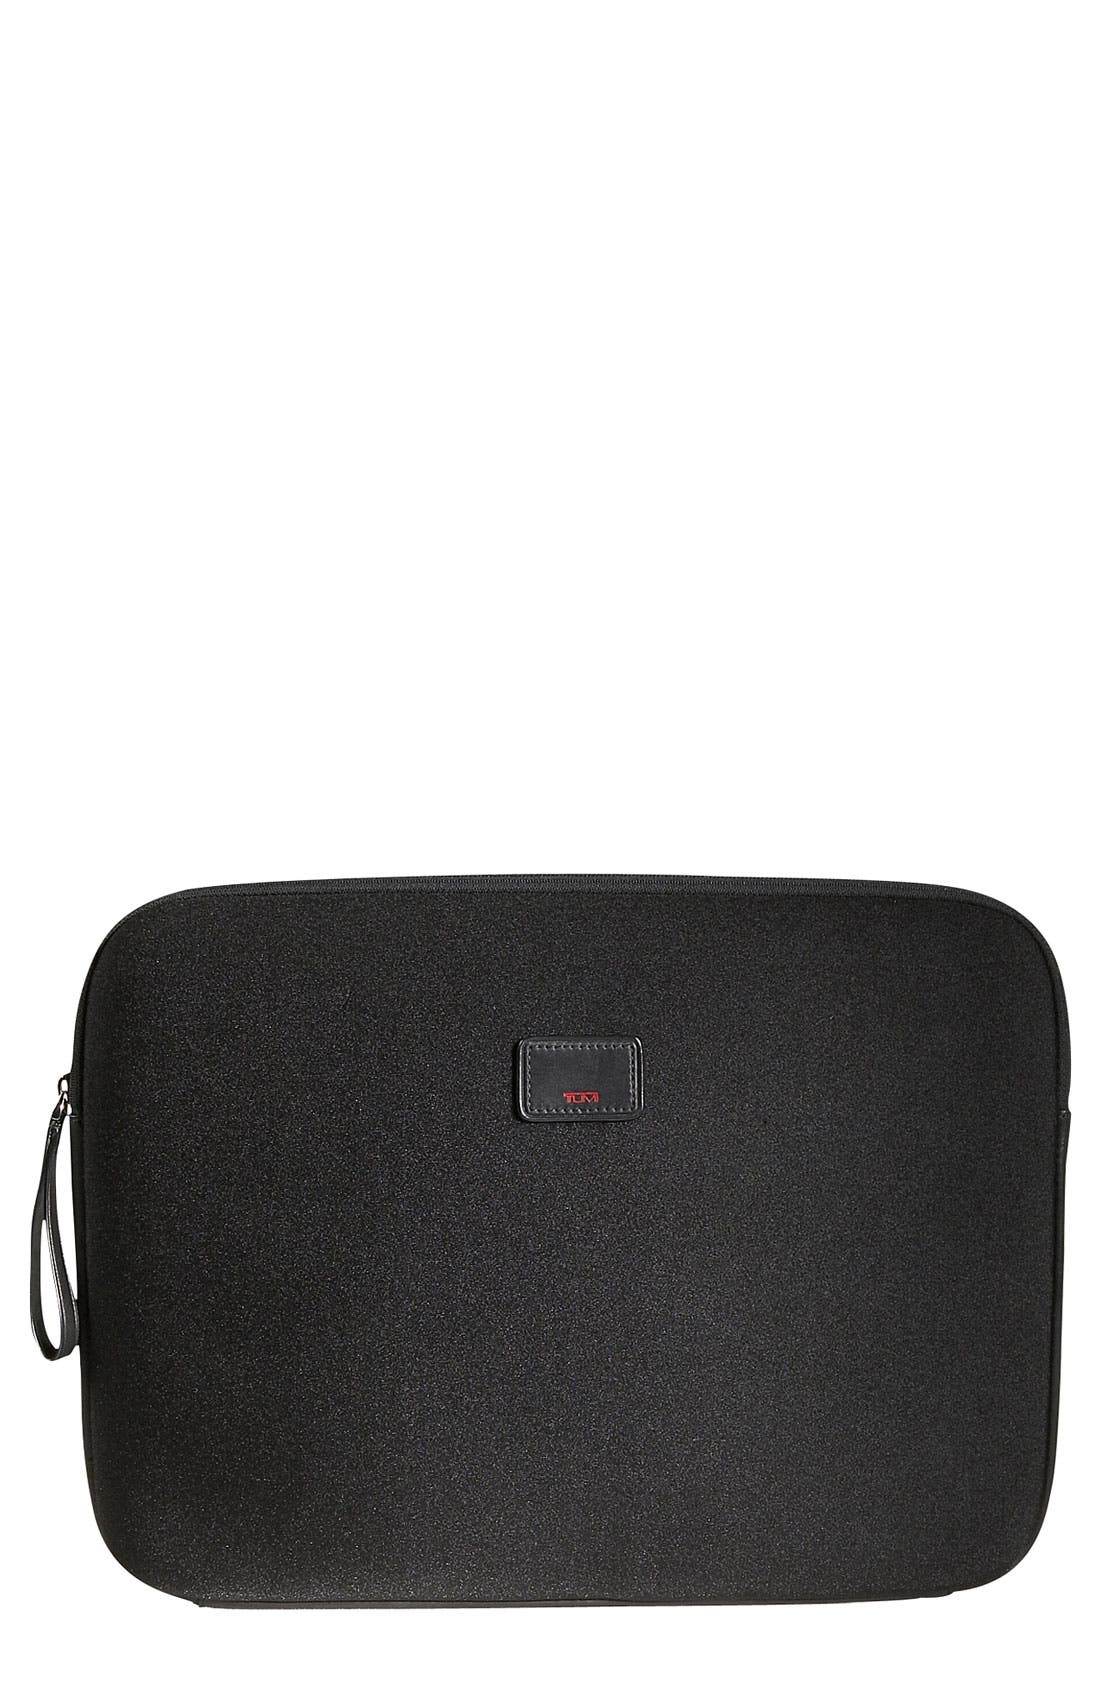 Alternate Image 1 Selected - Tumi 'Alpha - Medium' Laptop Cover (15 Inch)